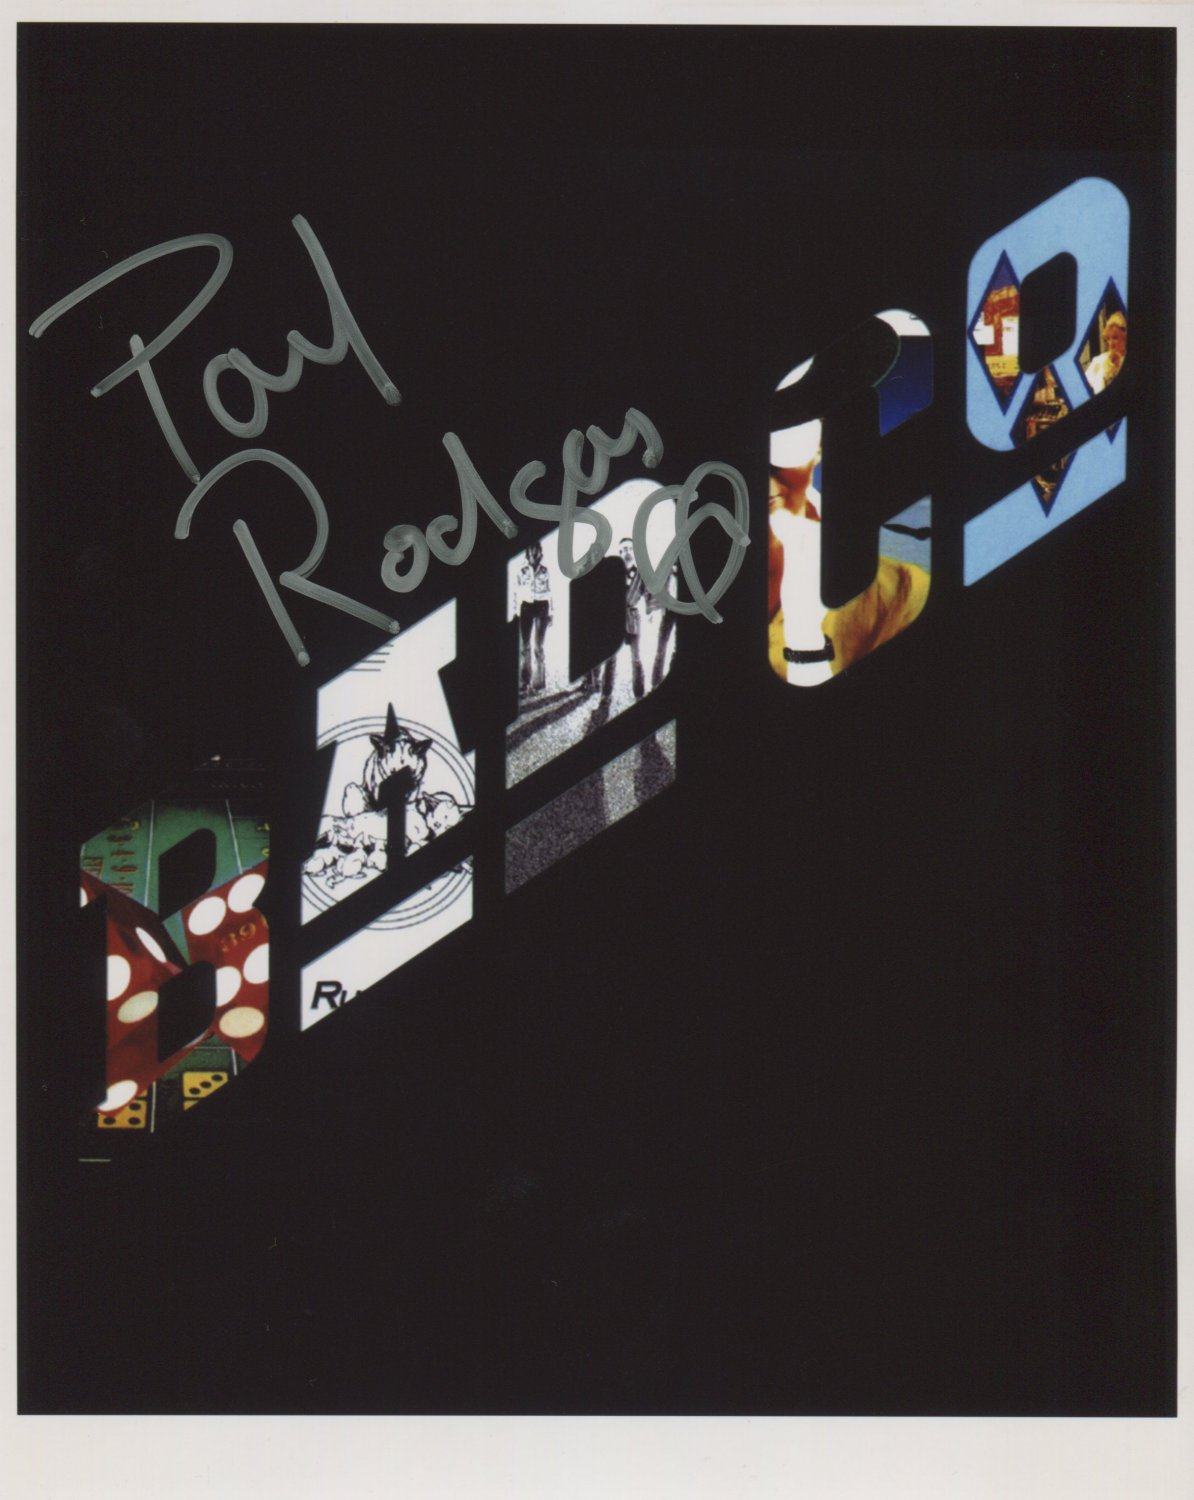 Paul Rodgers (Bad Company) SIGNED Photo + Certificate Of Authentication 100% Genuine